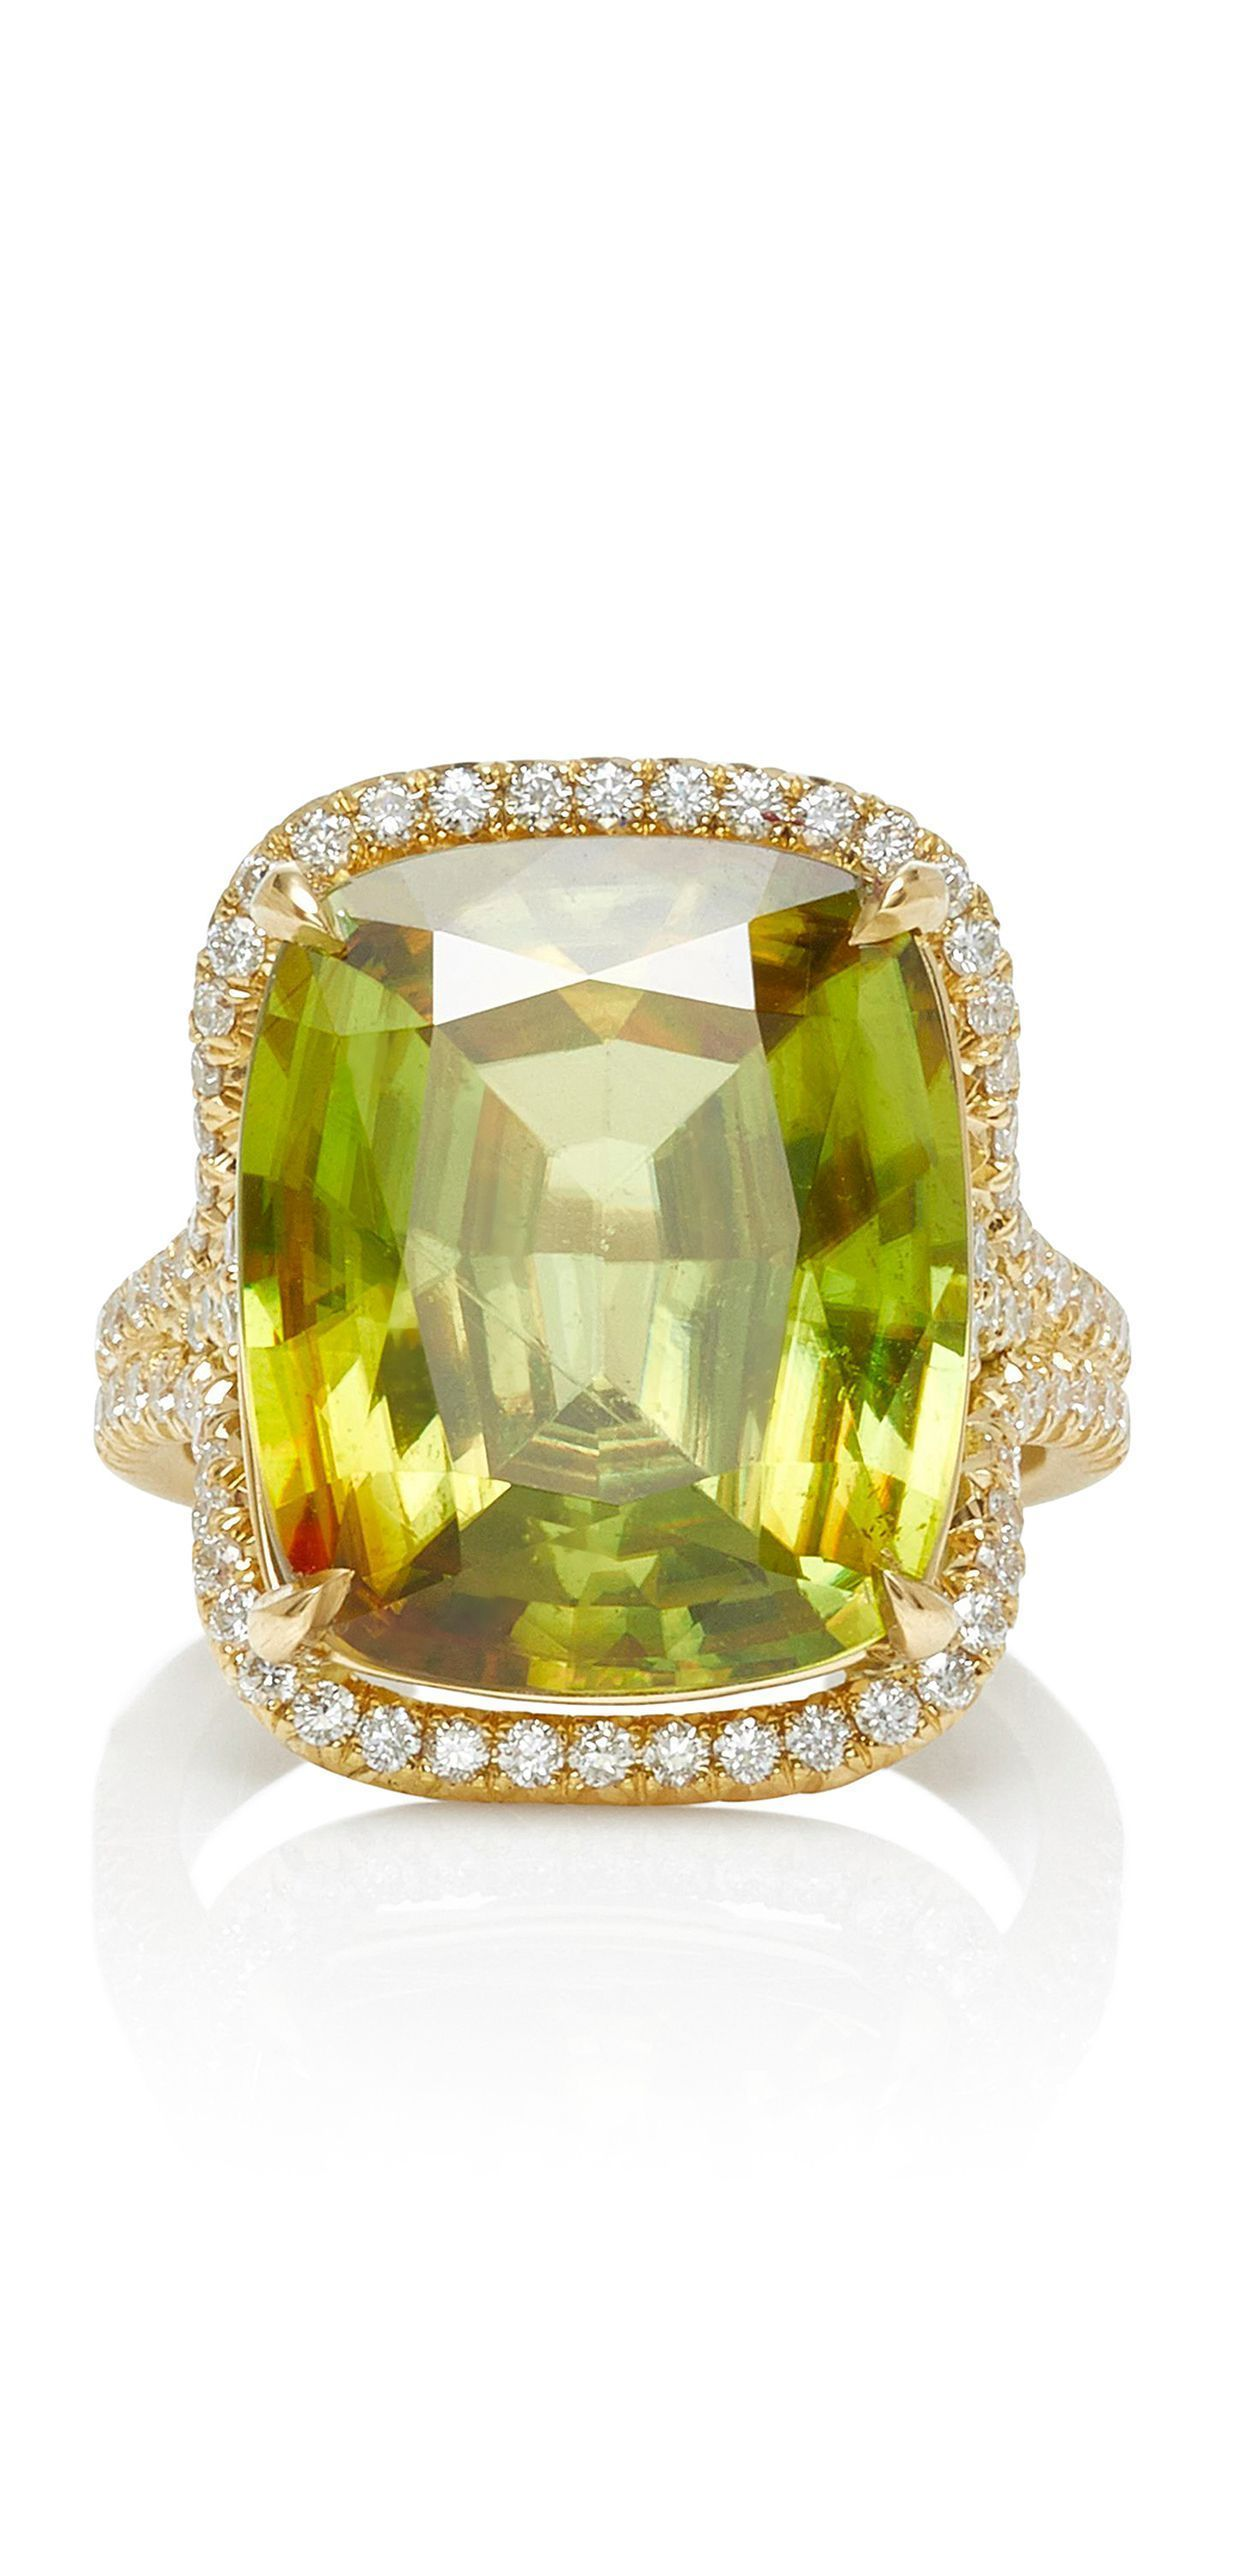 shopping gemstones sphene stunning images find gemshopping at for rings have gem every deco sapphire we network on and more pinterest best blue jewelry peridot something